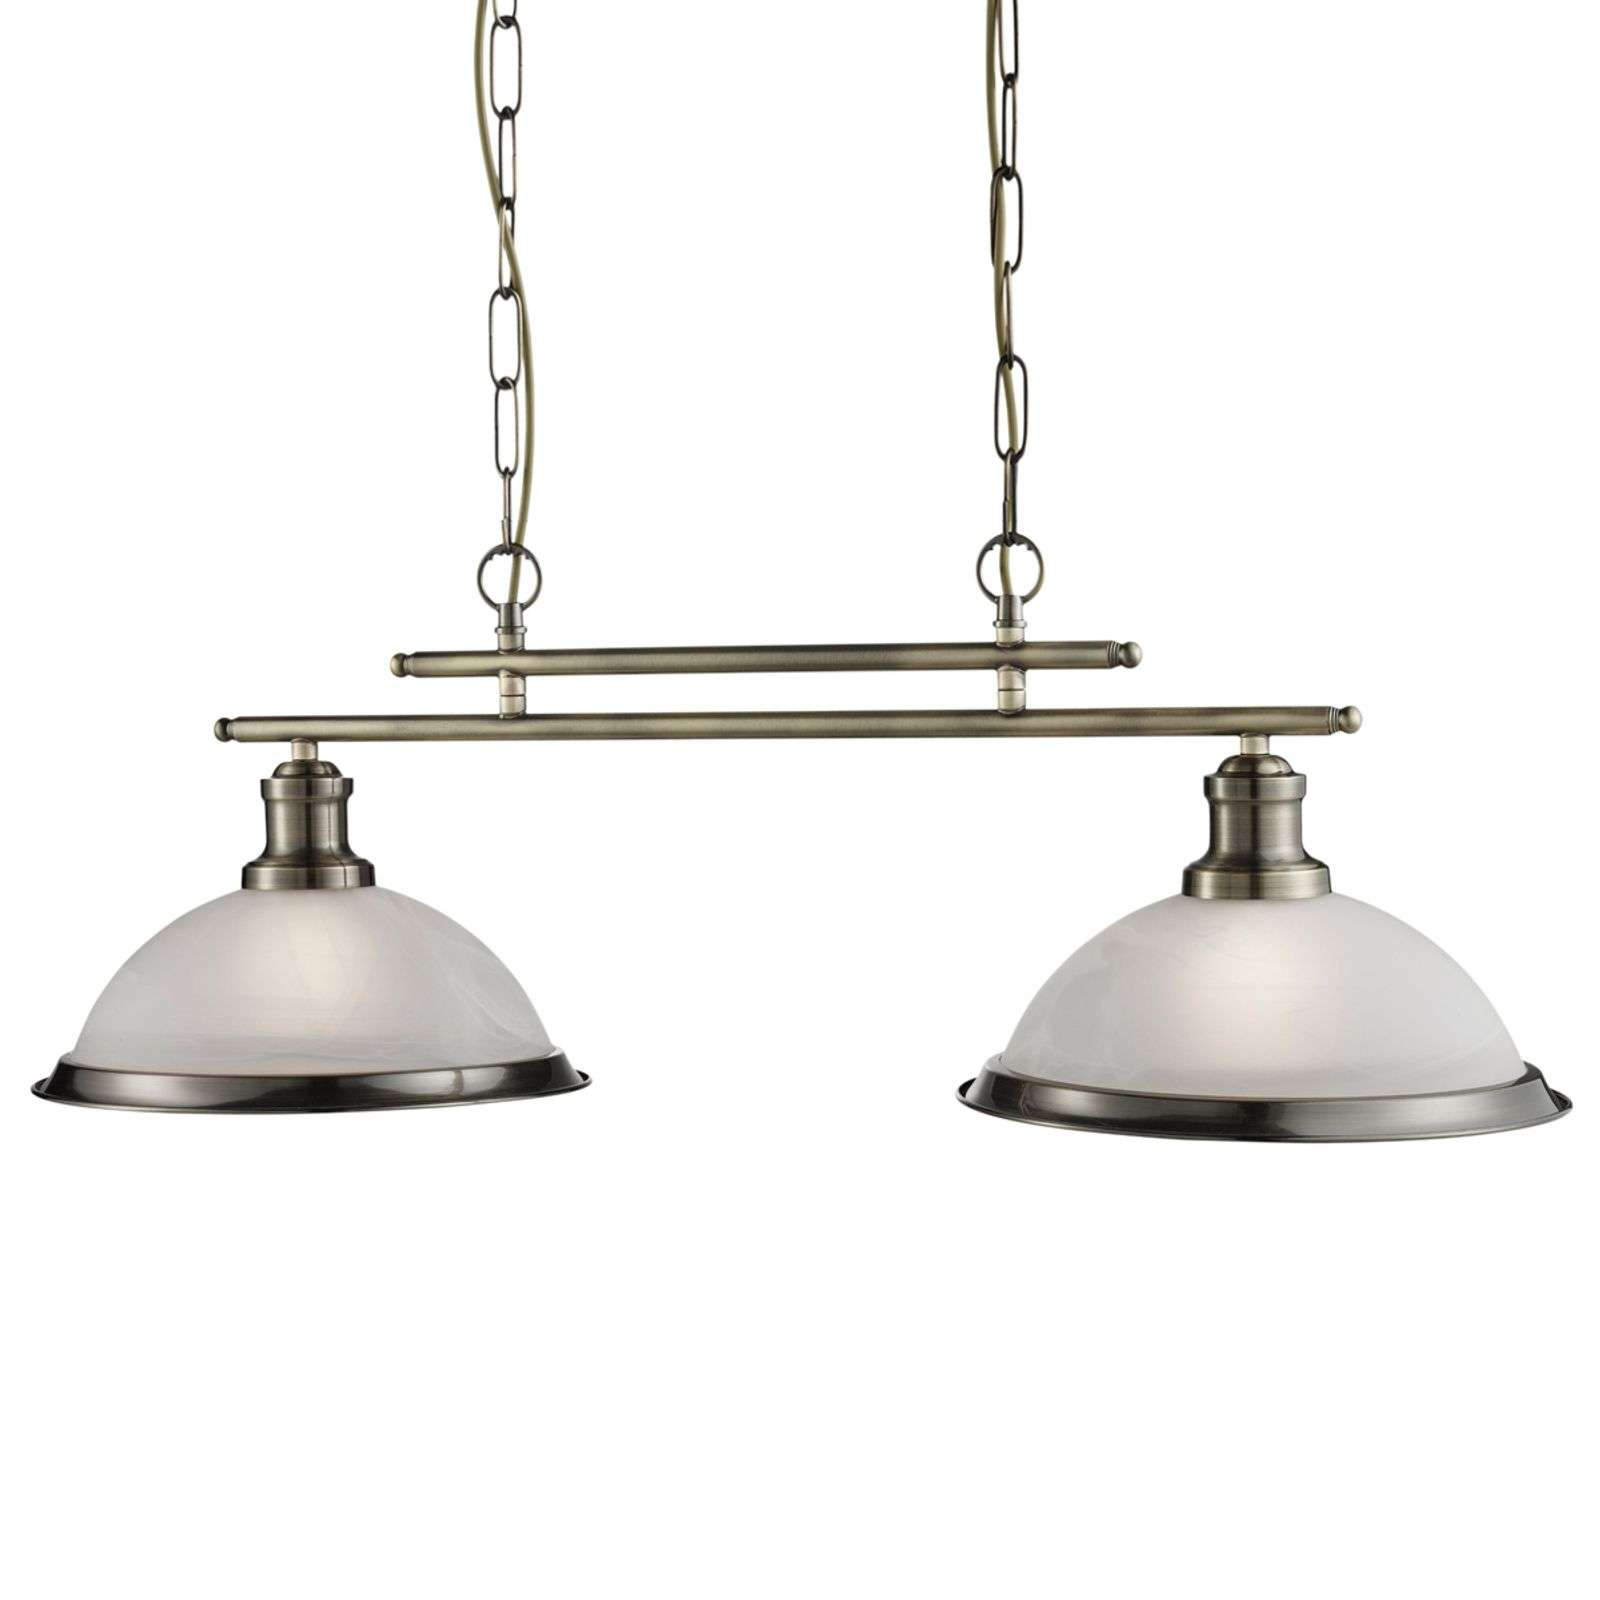 Magnifique suspension Bistro style antique